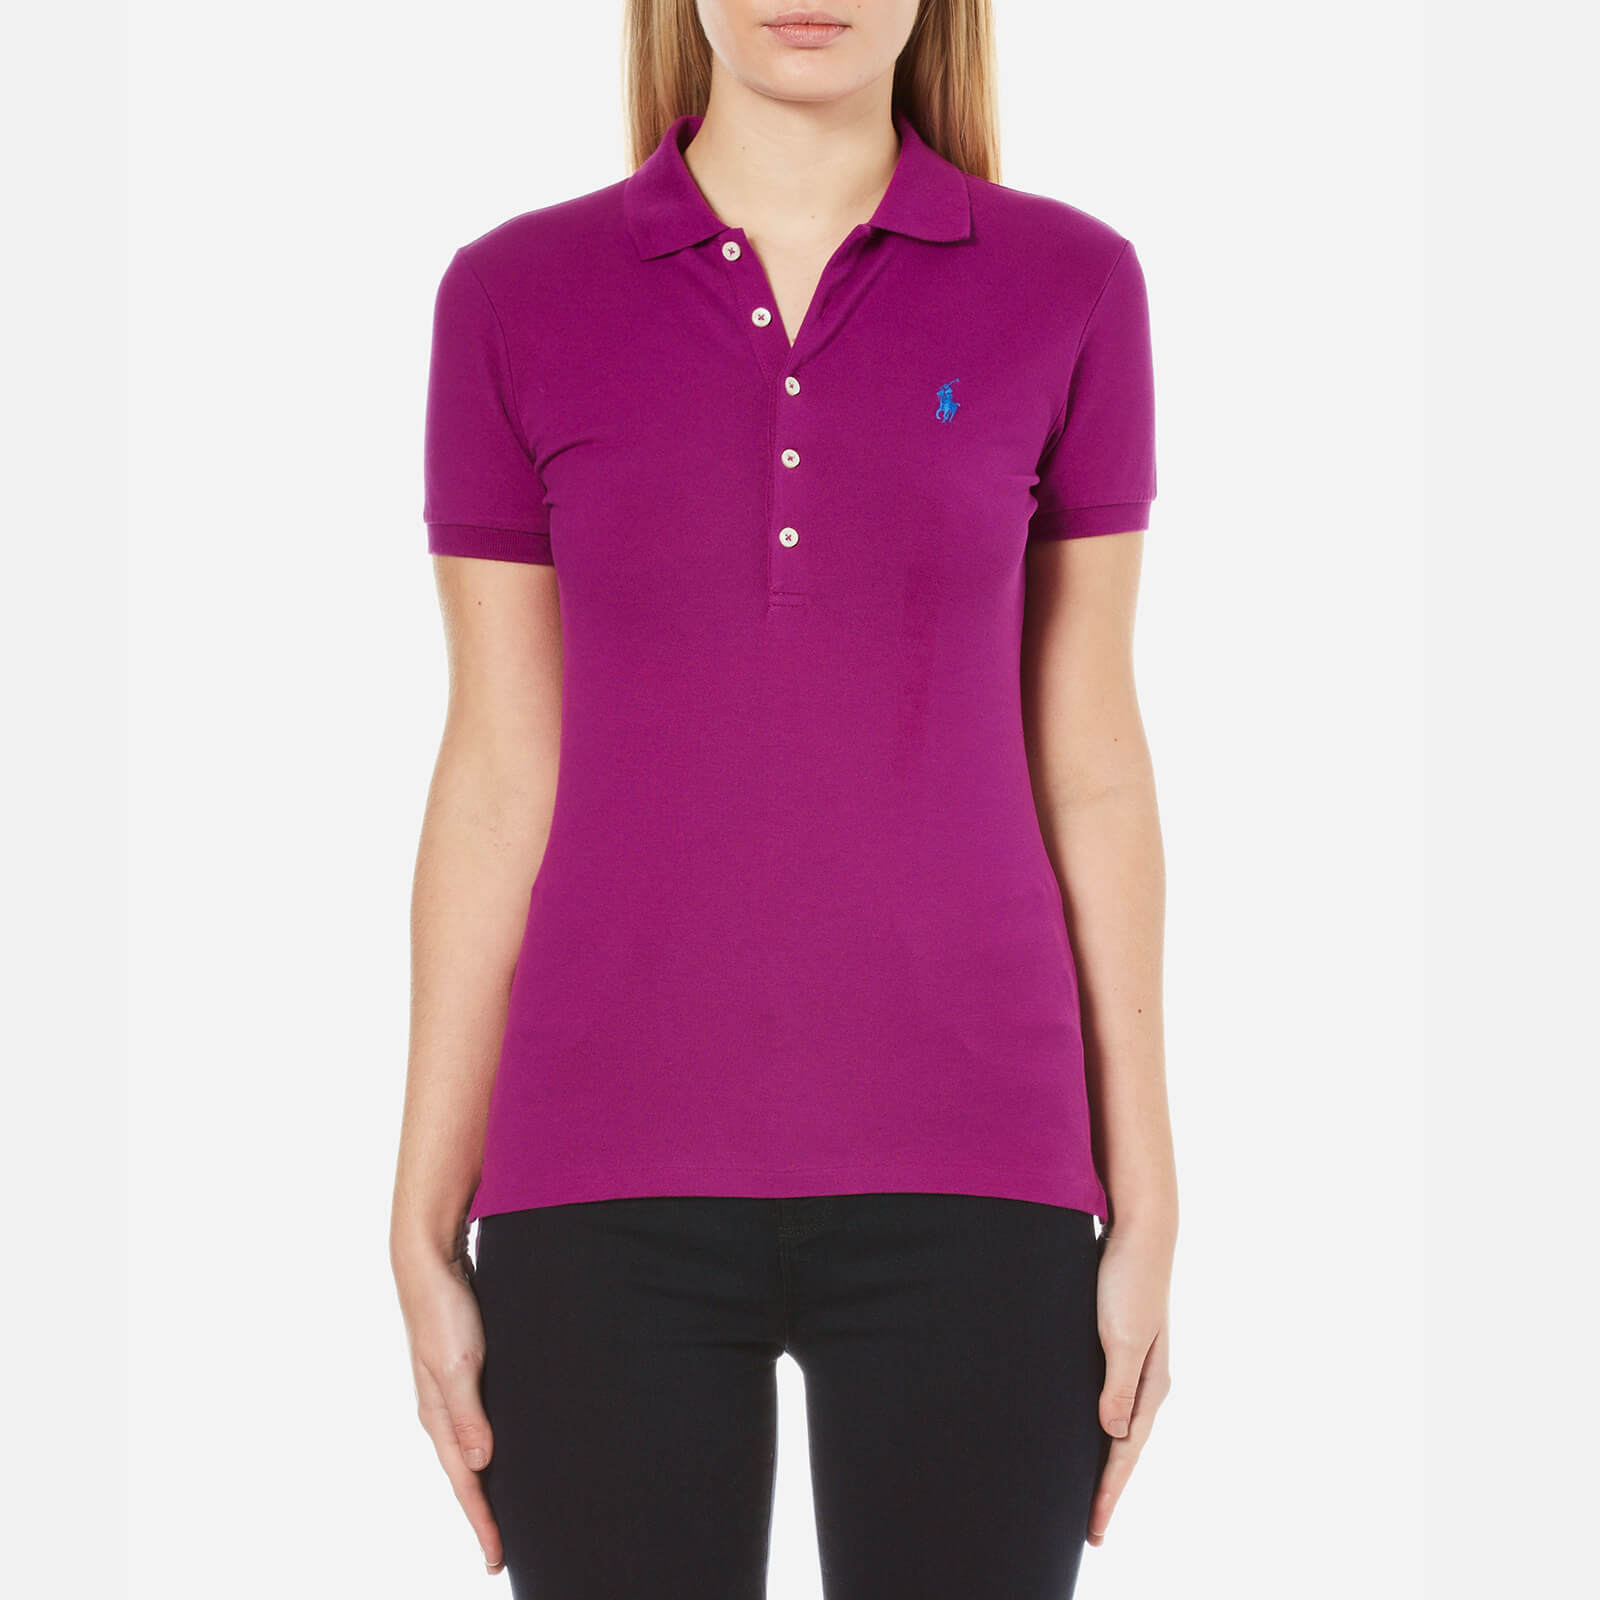 81caffec6cd5 Polo Ralph Lauren Women's Julie Polo Shirt - Bright Magenta - Free UK  Delivery over £50